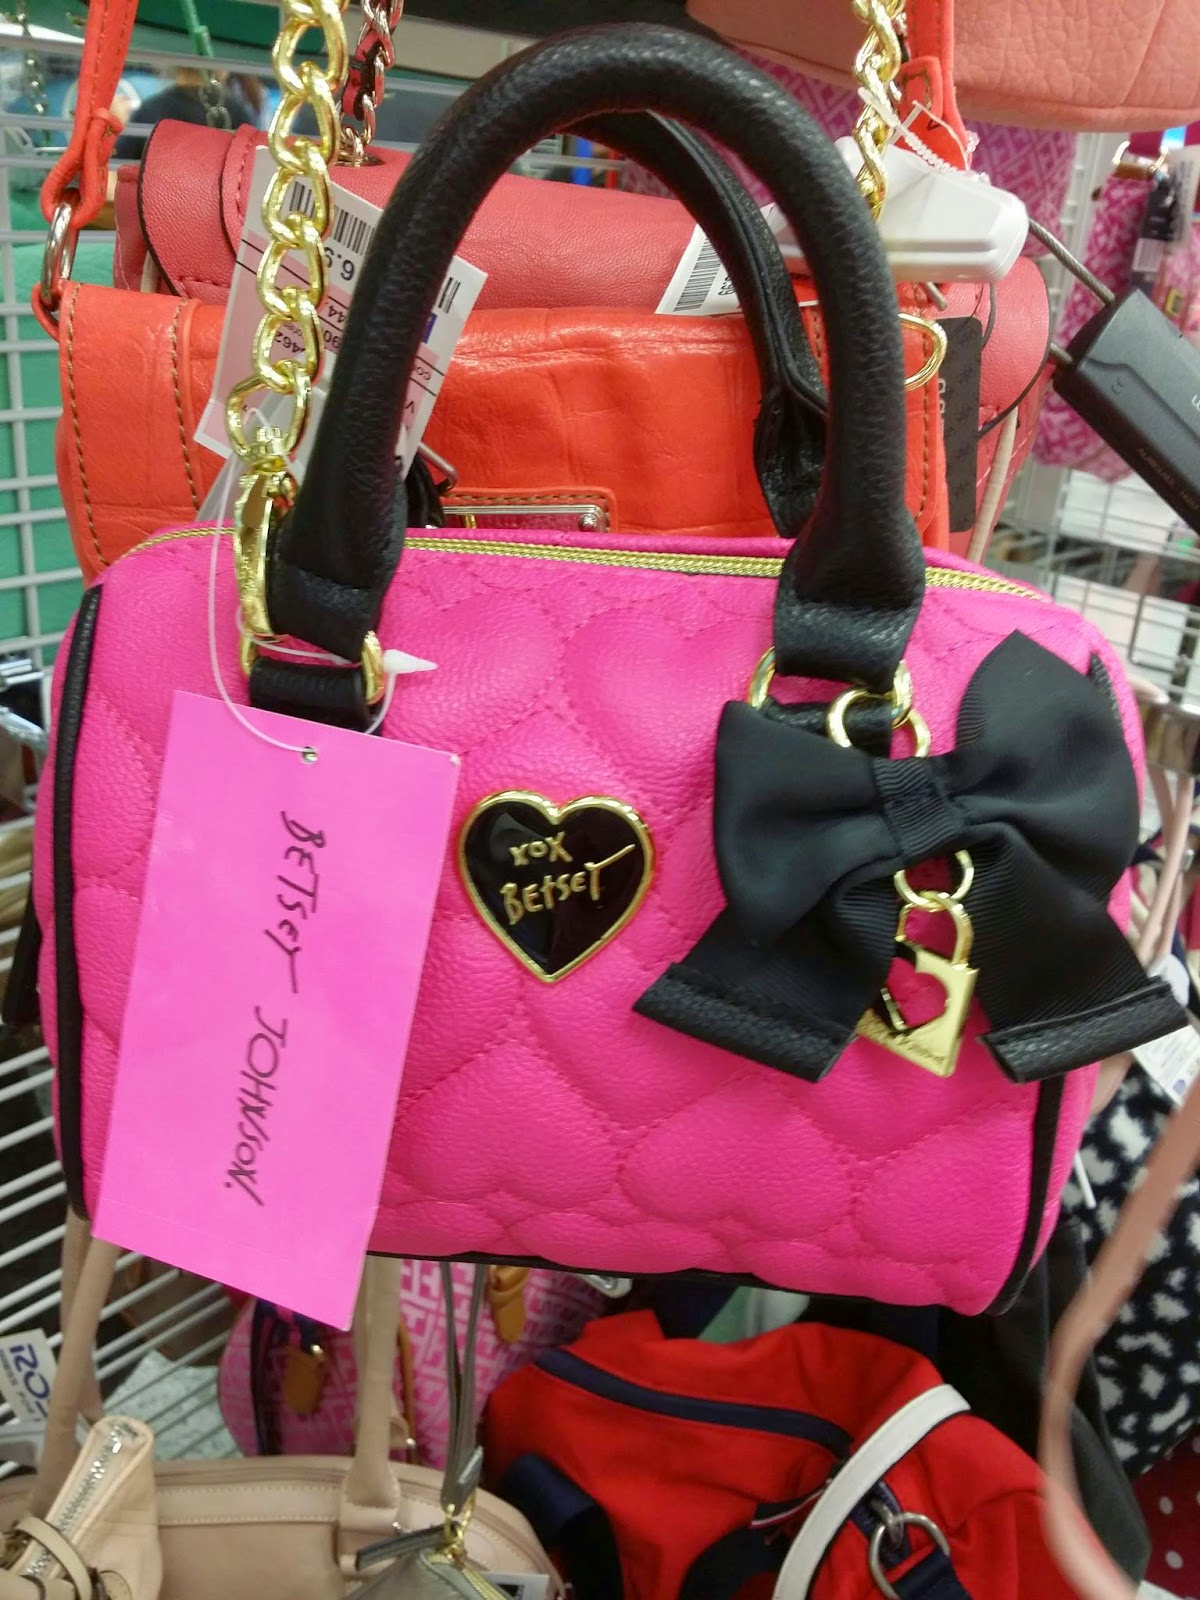 Betsey Johnson Purses At Ross Dress Images